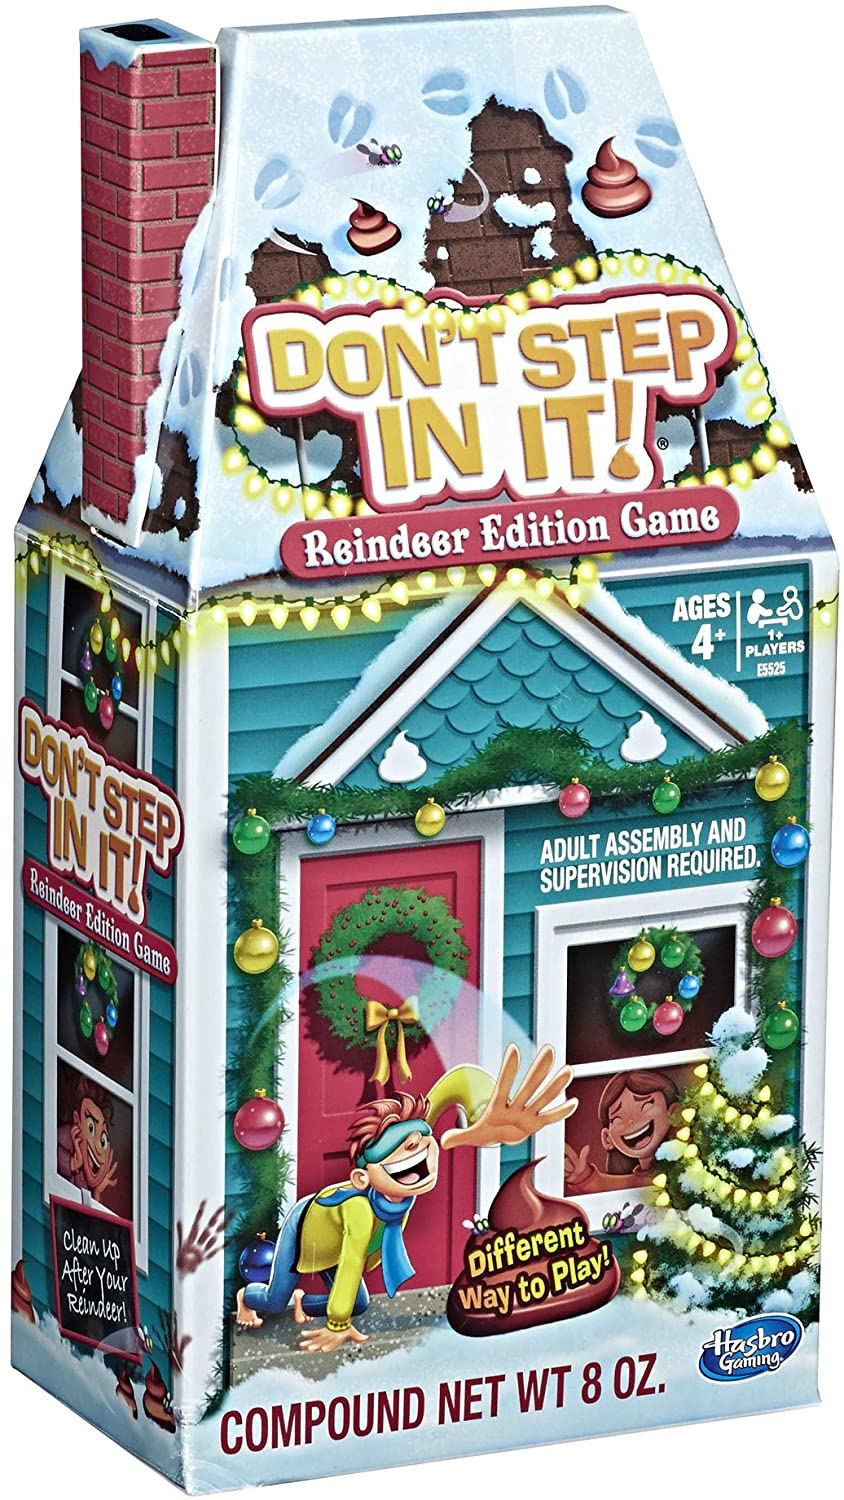 Don't Step In It!: Reindeer Edition Game